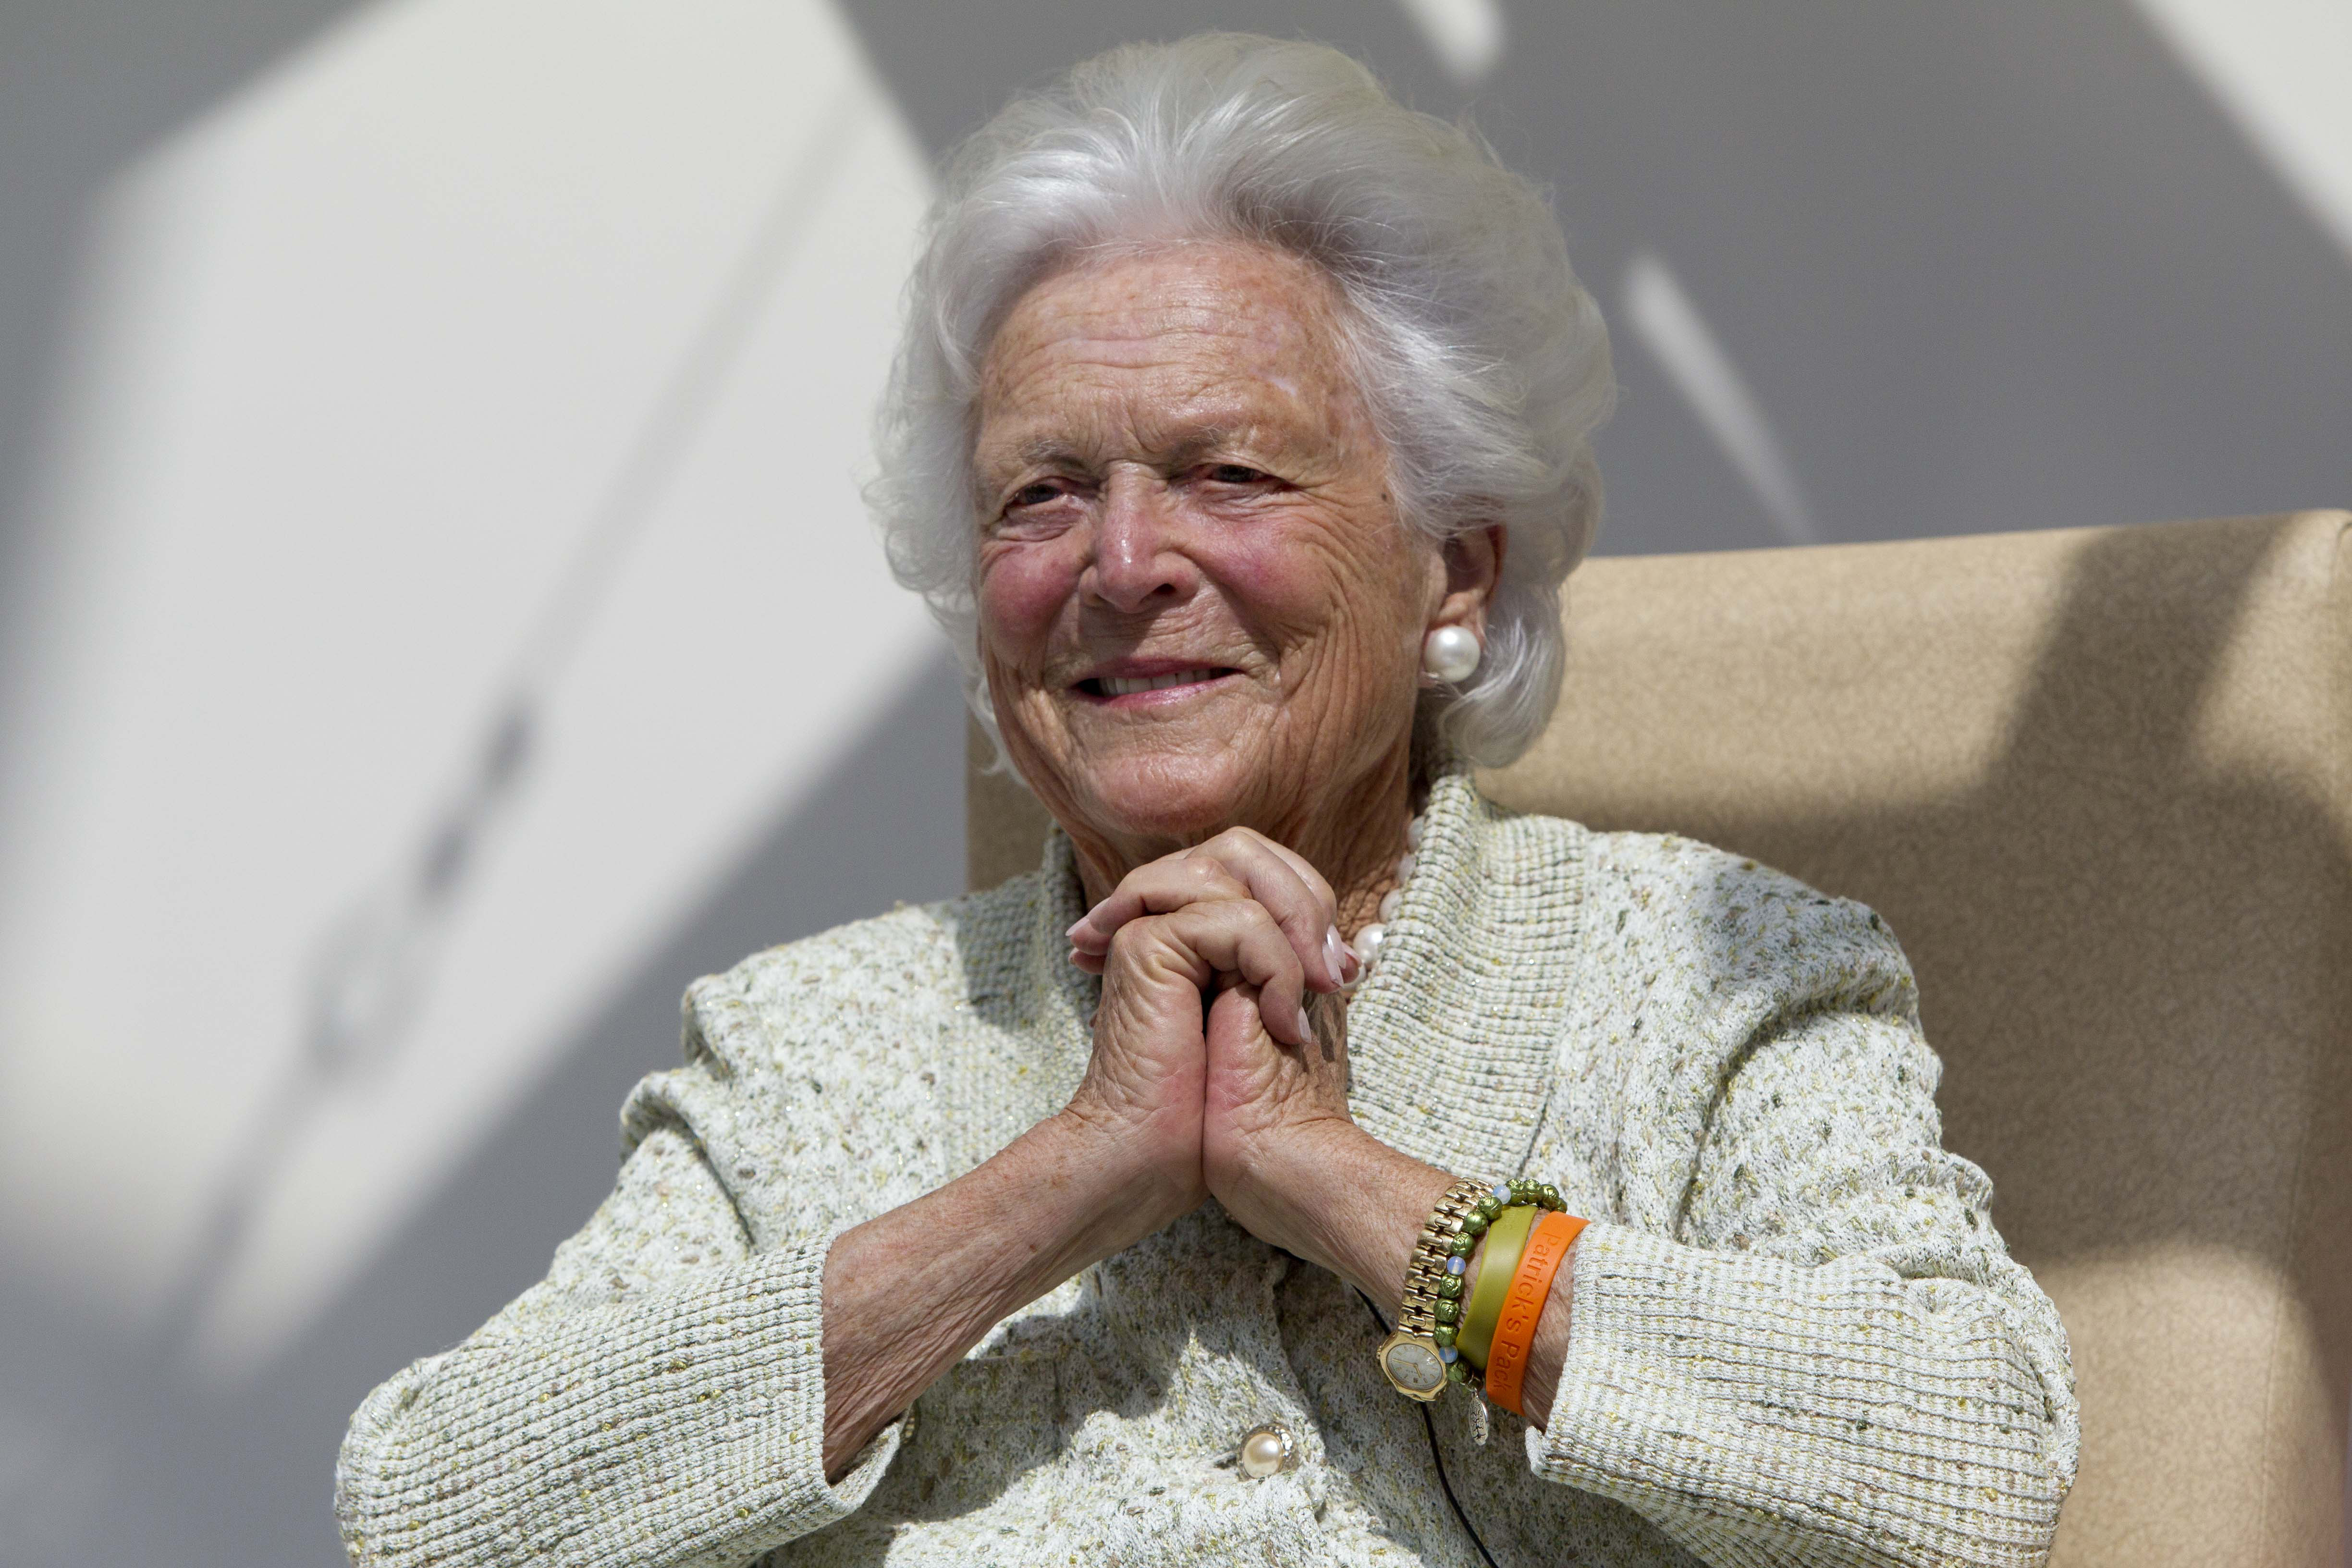 Barbara Bush in a Aug. 22, 2013, file photo. The former First Lady died on April 17, 2018, at the age of 92.